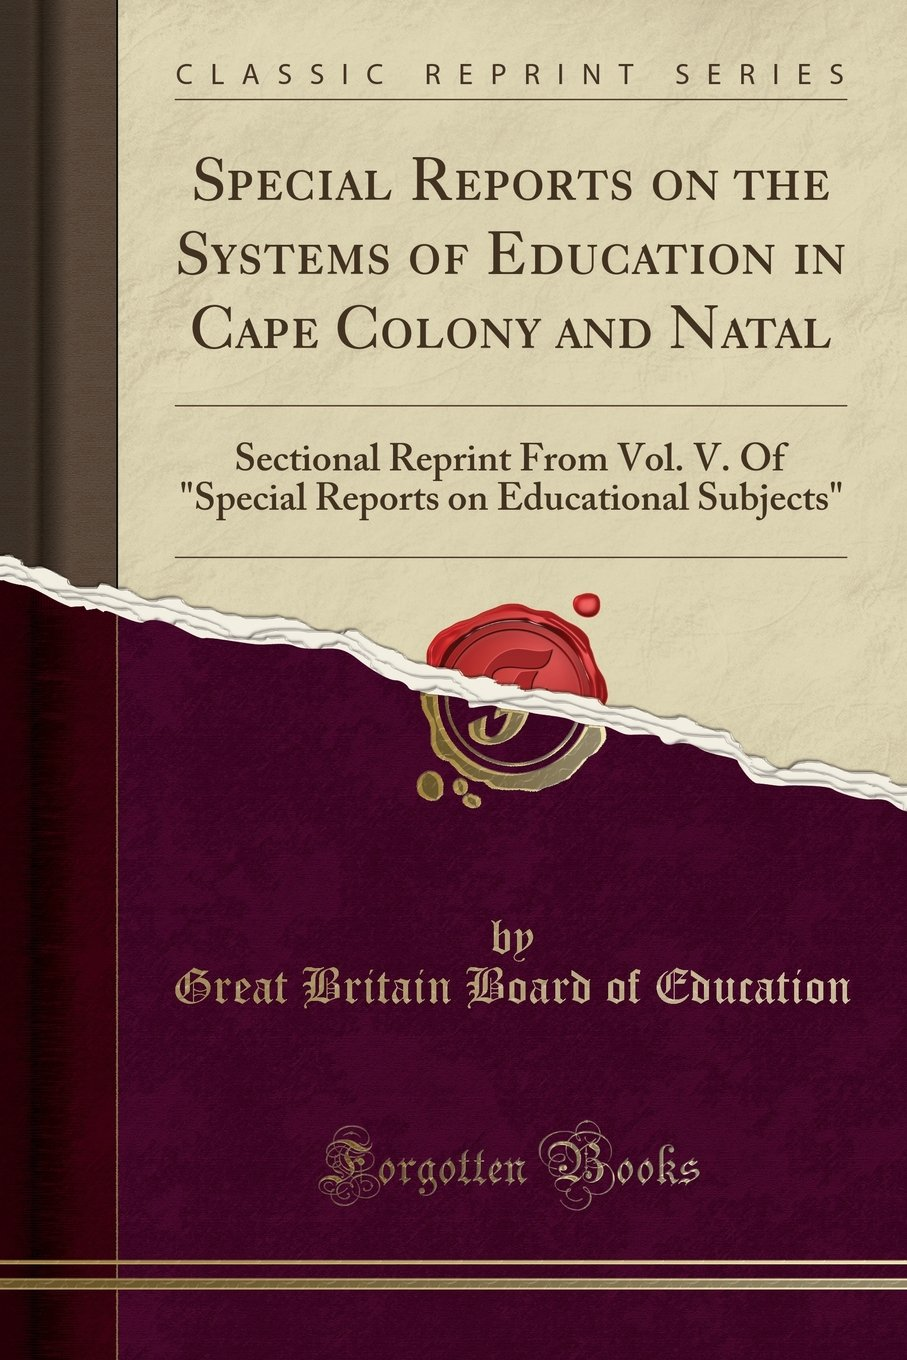 """Read Online Special Reports on the Systems of Education in Cape Colony and Natal: Sectional Reprint From Vol. V. Of """"Special Reports on Educational Subjects"""" (Classic Reprint) PDF"""